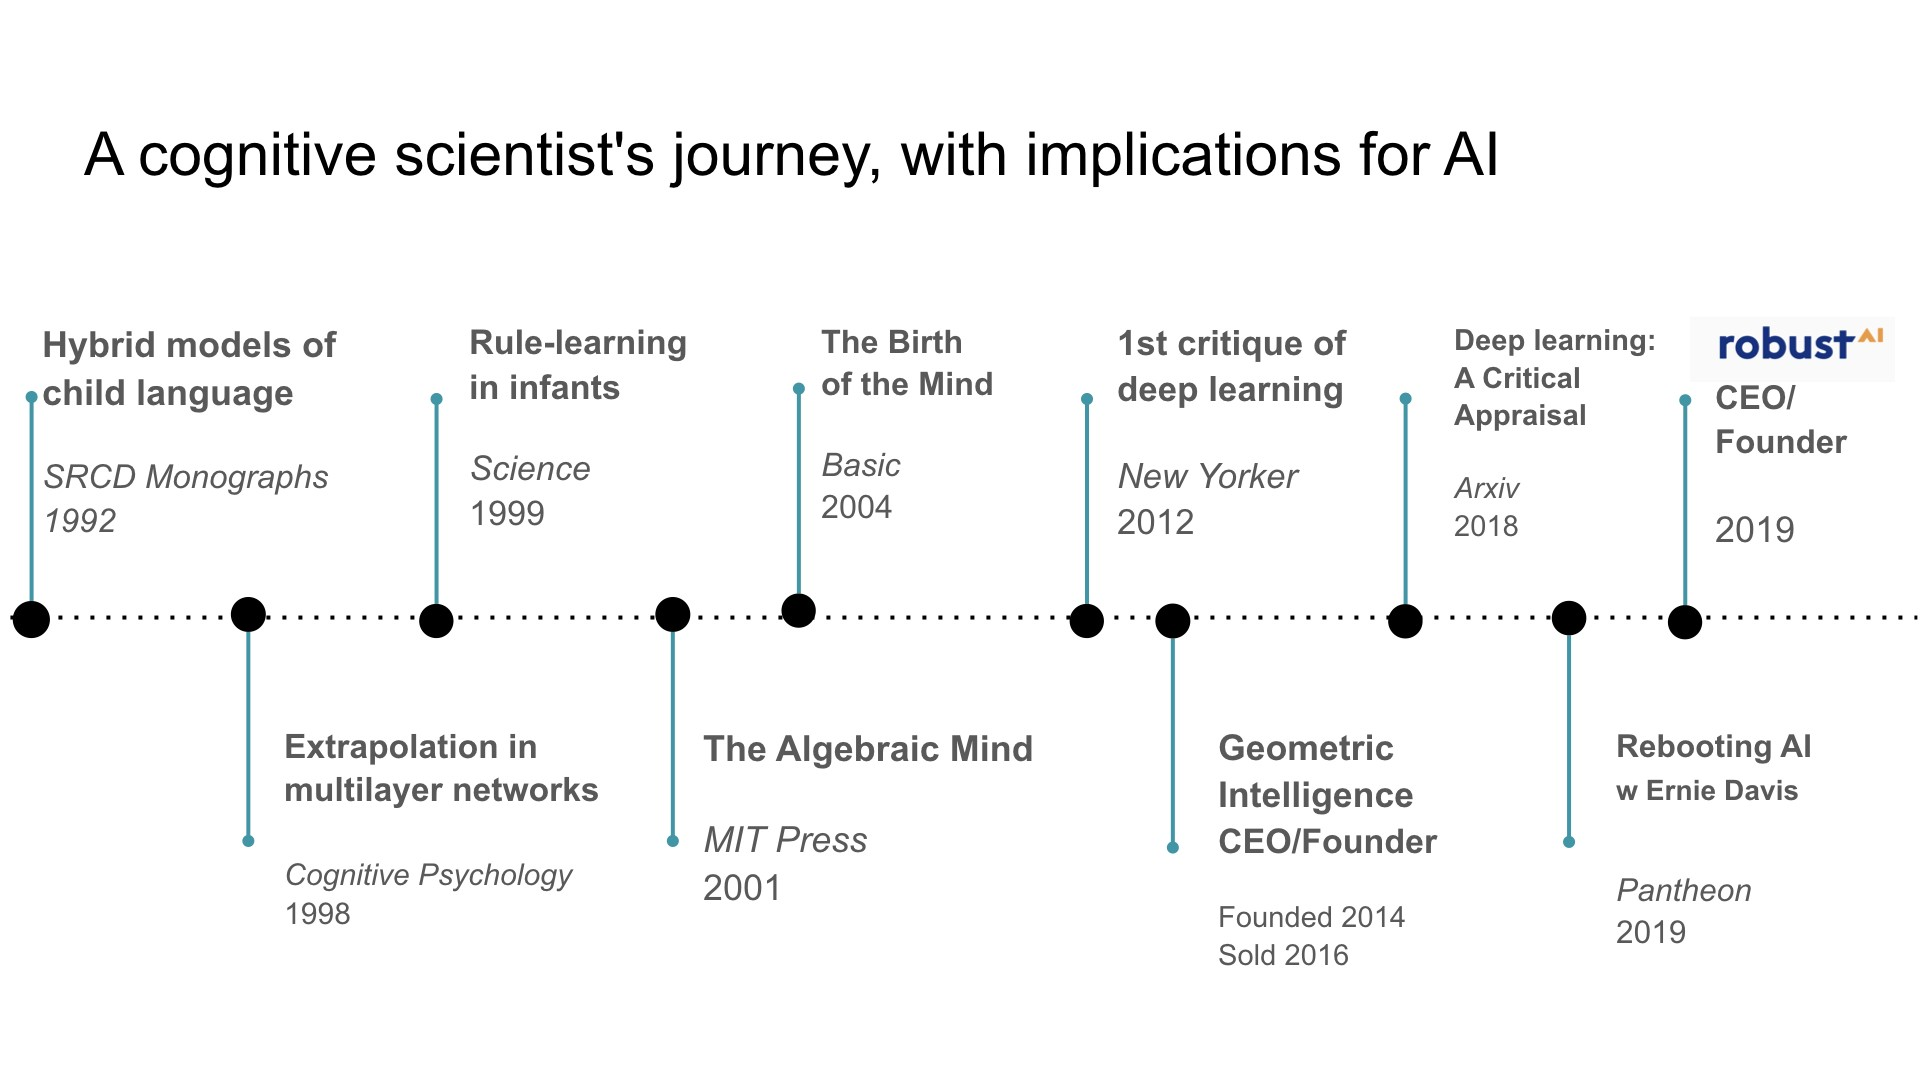 A cognitive scientist's journey, with implications for AI